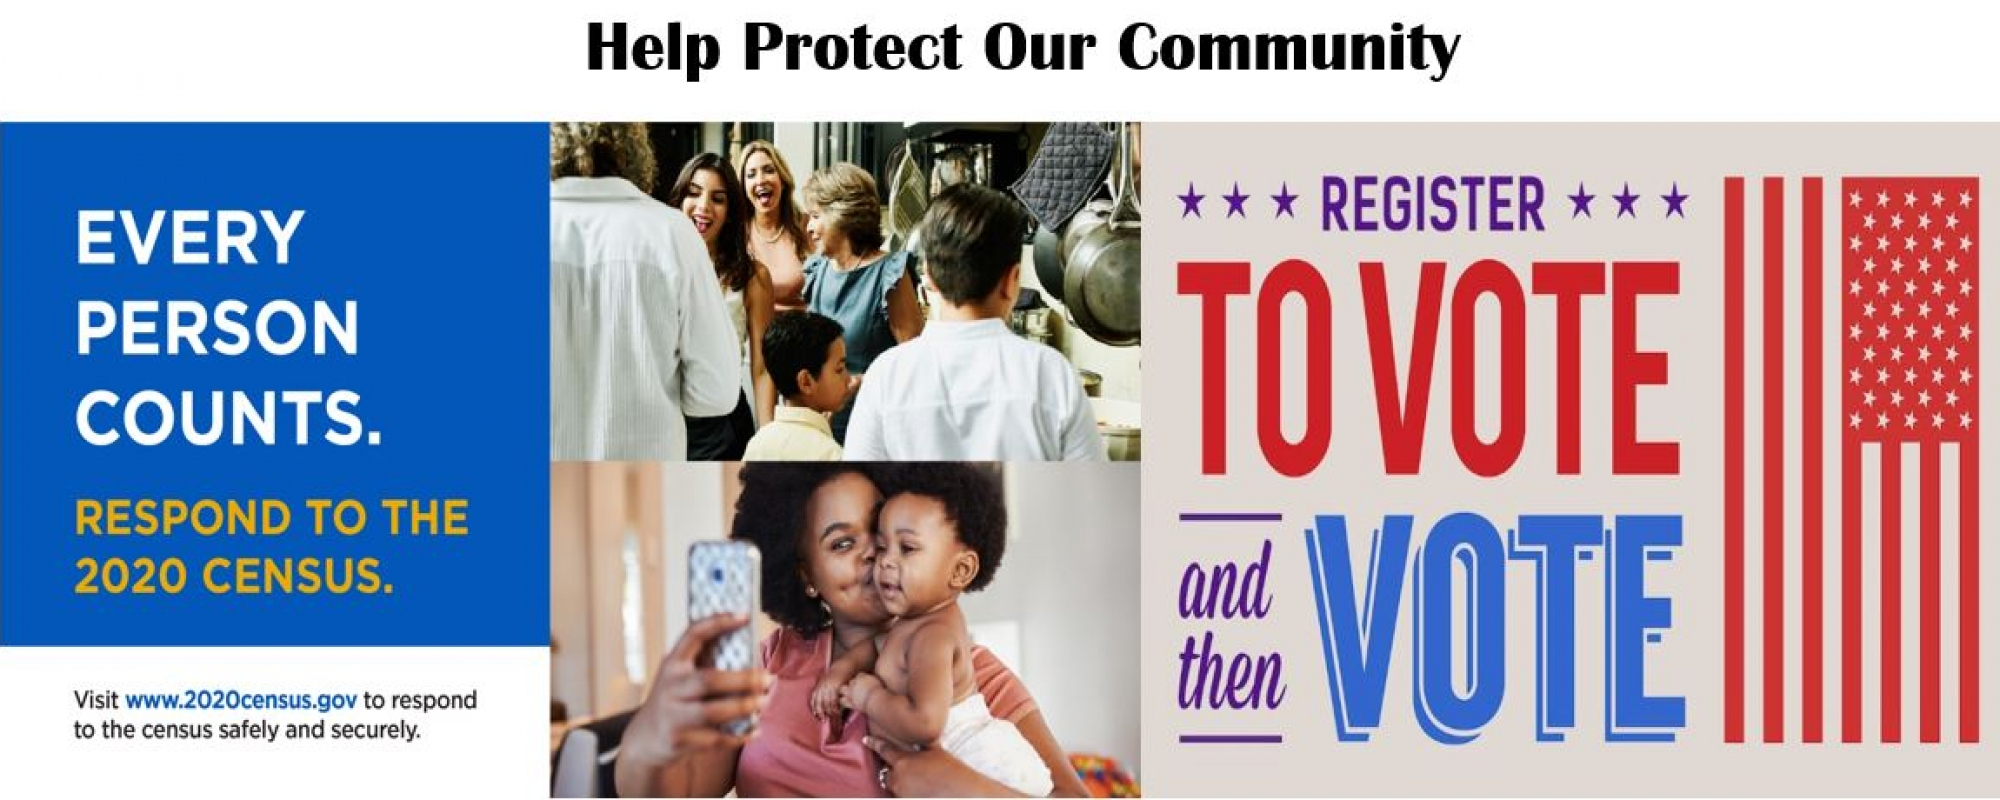 Help protect census & vote slider size one more again